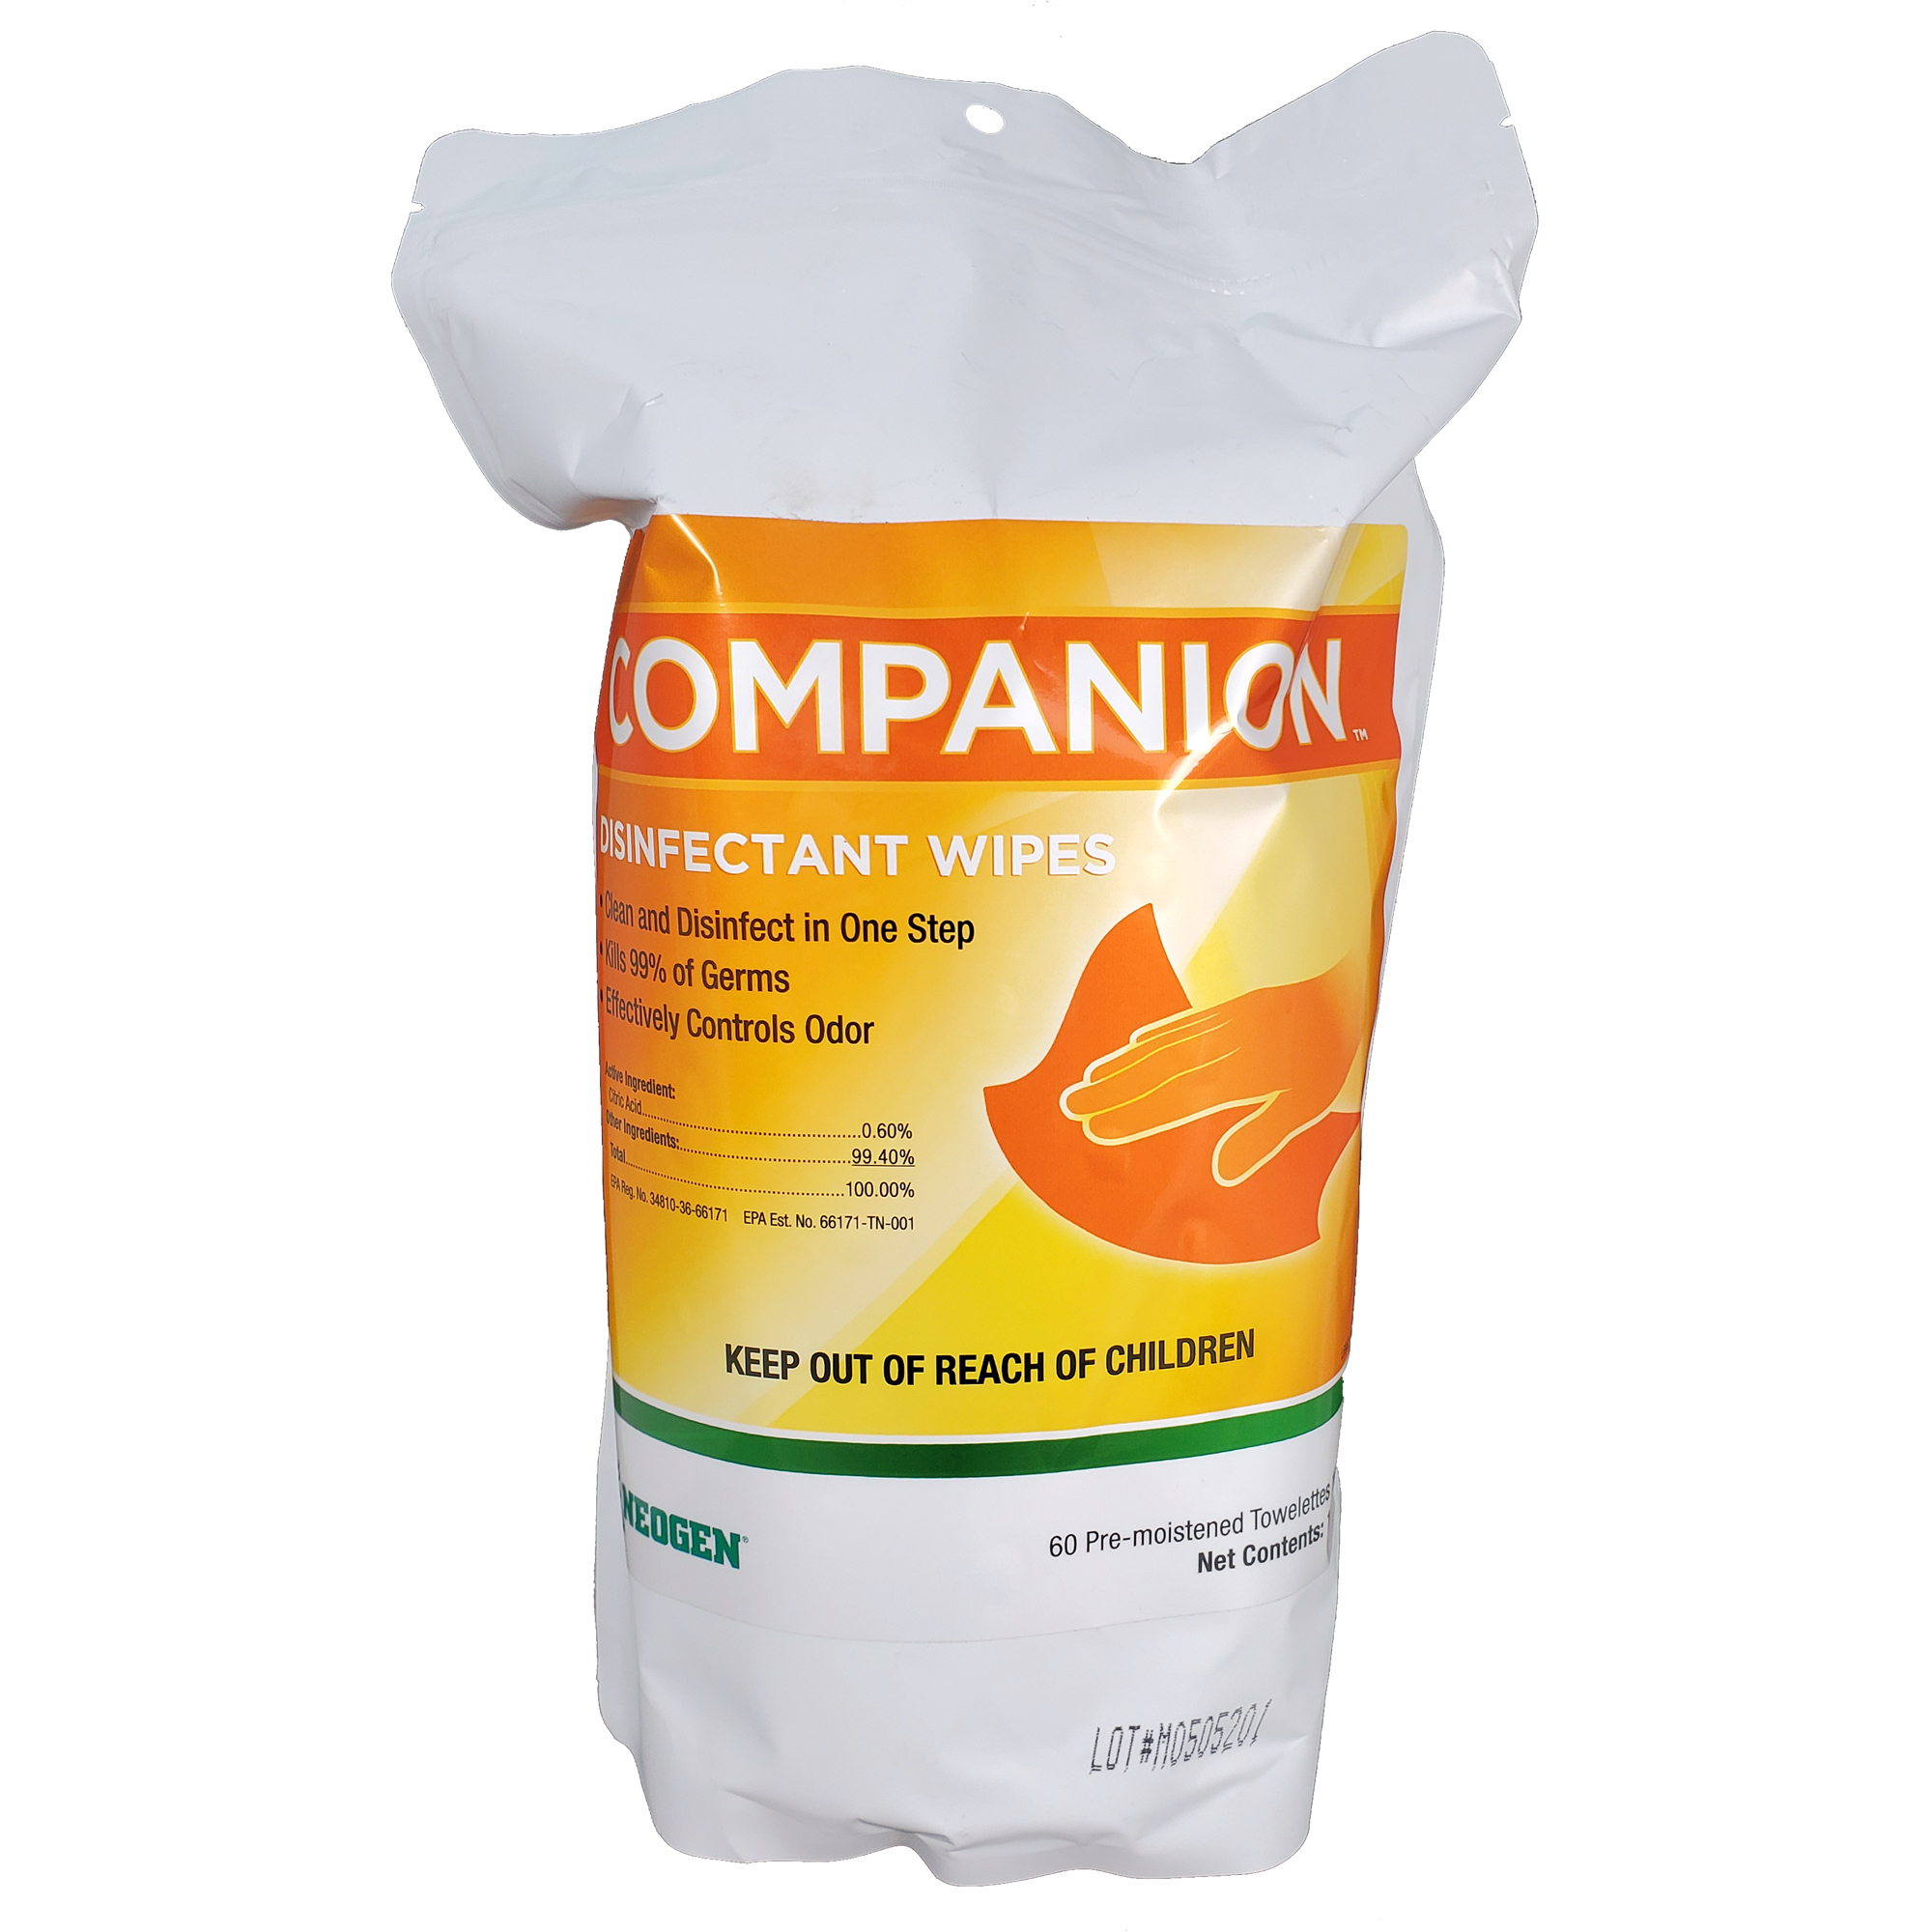 Companion Disinfectant Wipes (Soft Pack)